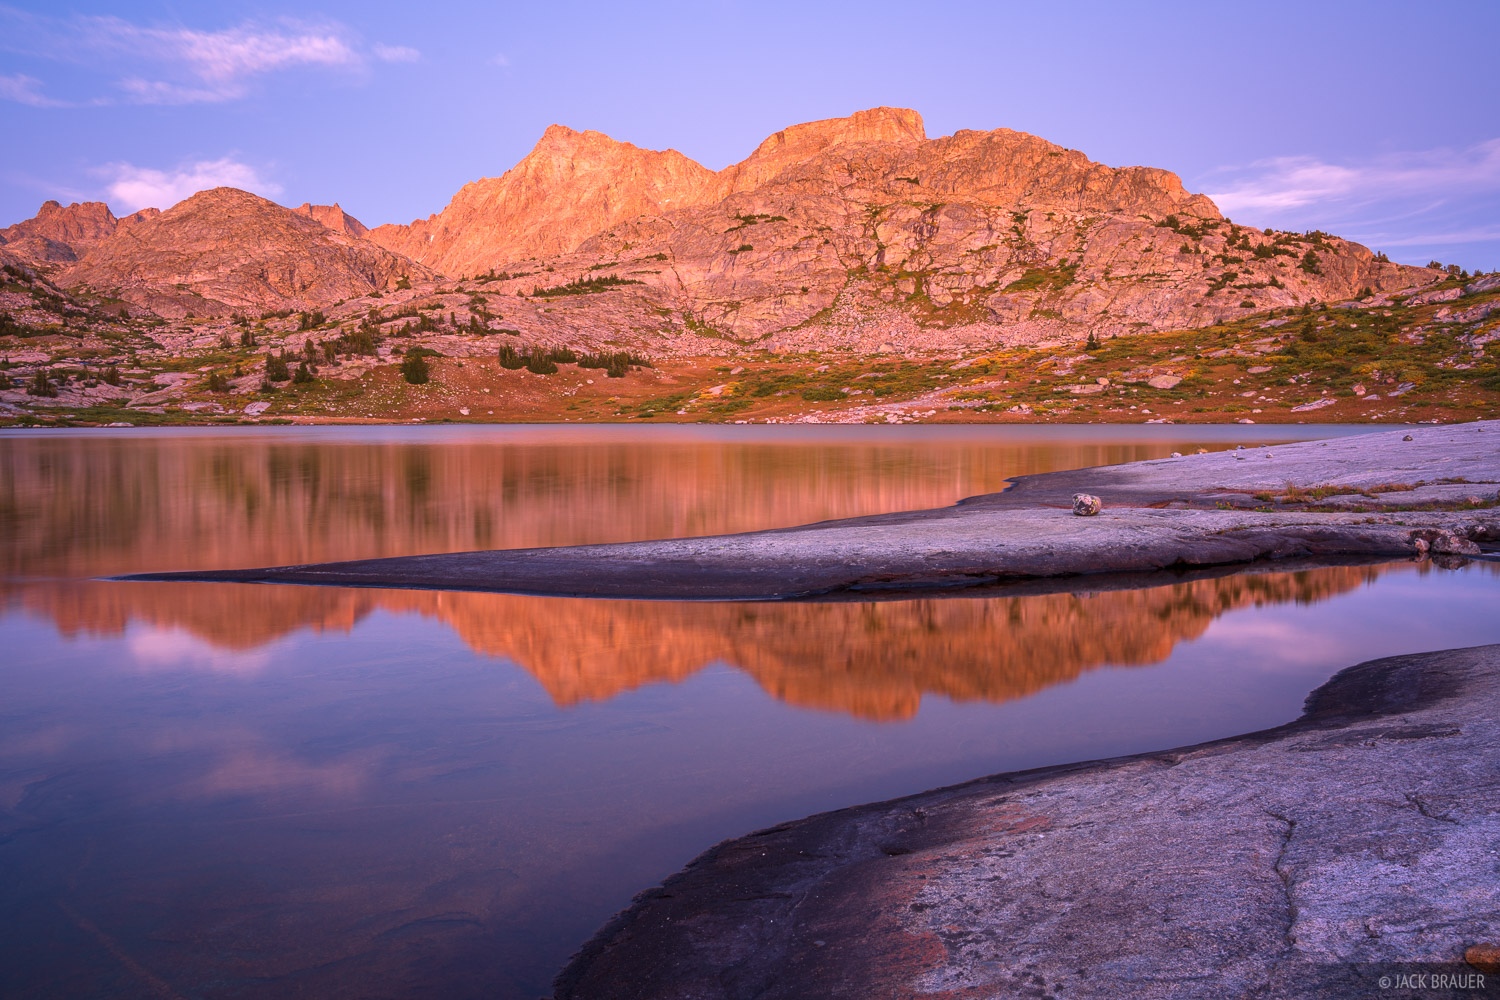 Bridger Wilderness, Ellingwood Peak, Wind River Range, Wyoming, photo